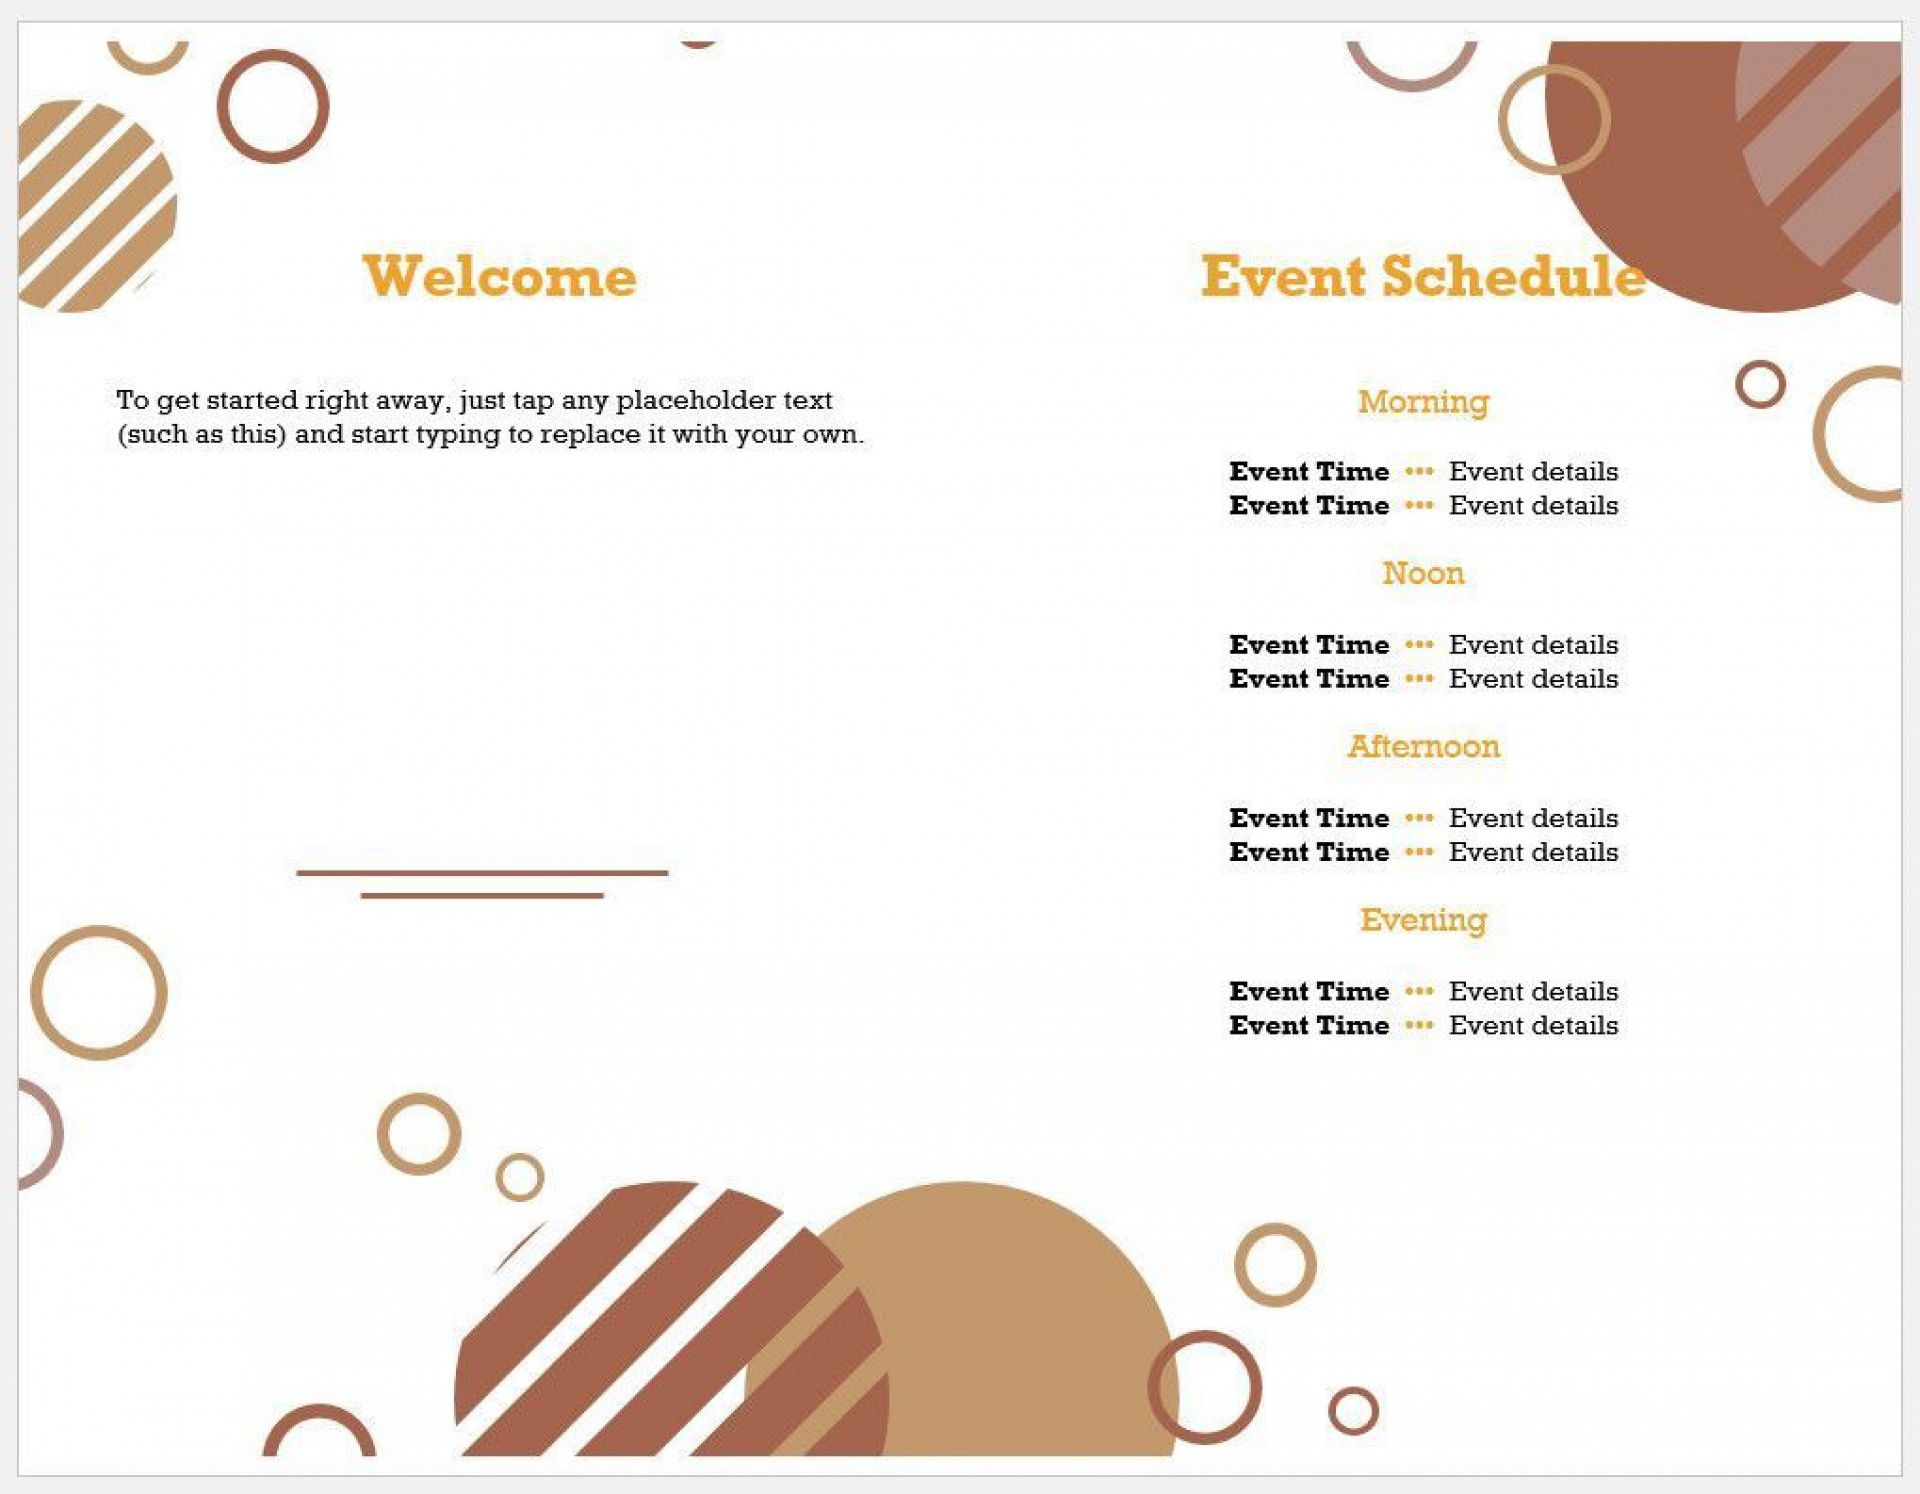 001 Top Free Event Program Template Picture  Schedule Psd WordFull